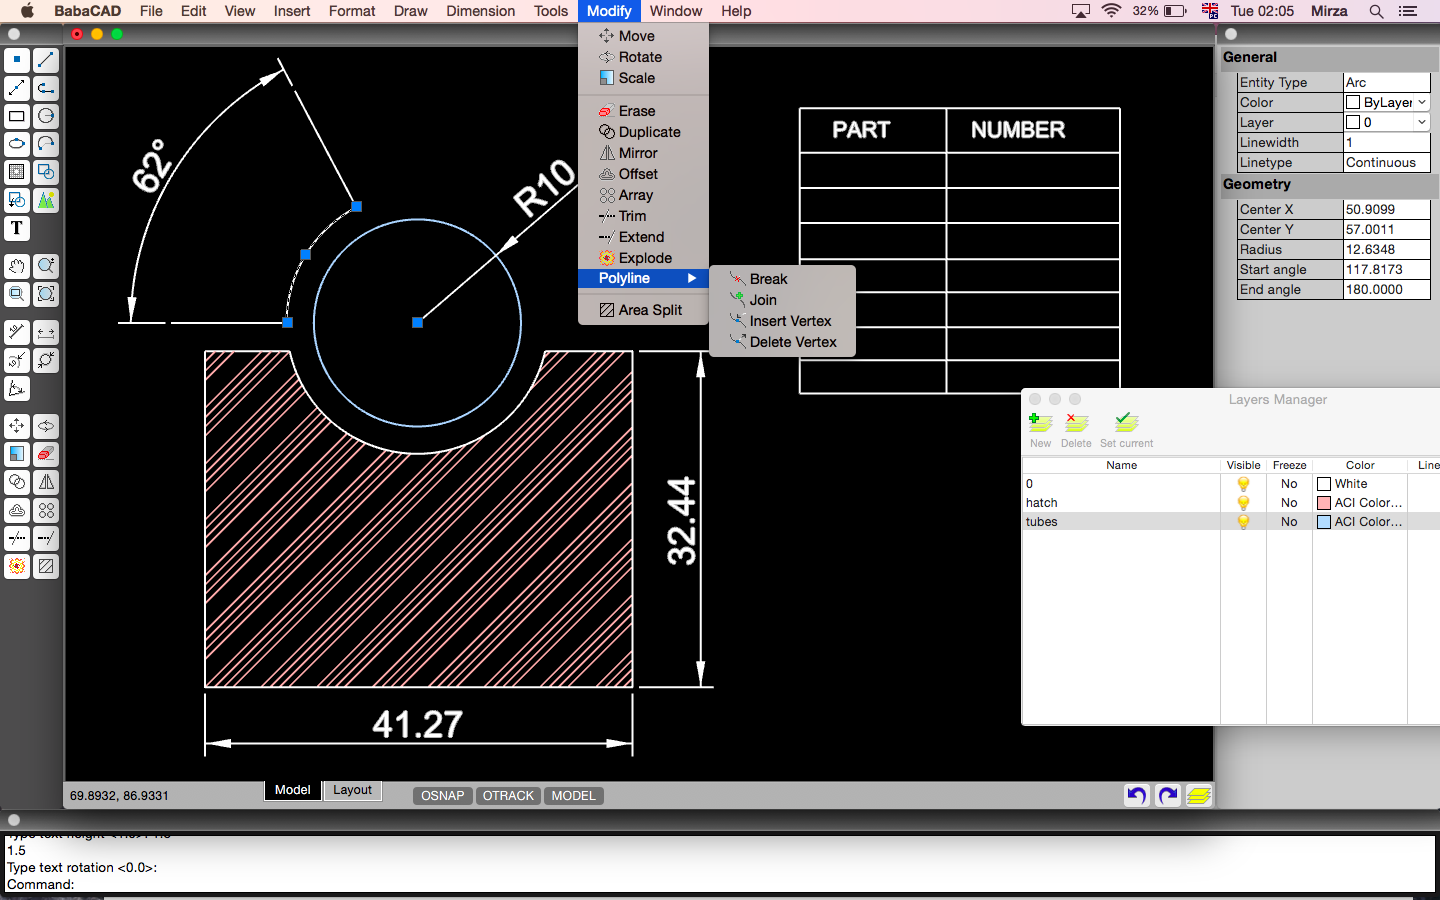 babacad free cad software for mac os